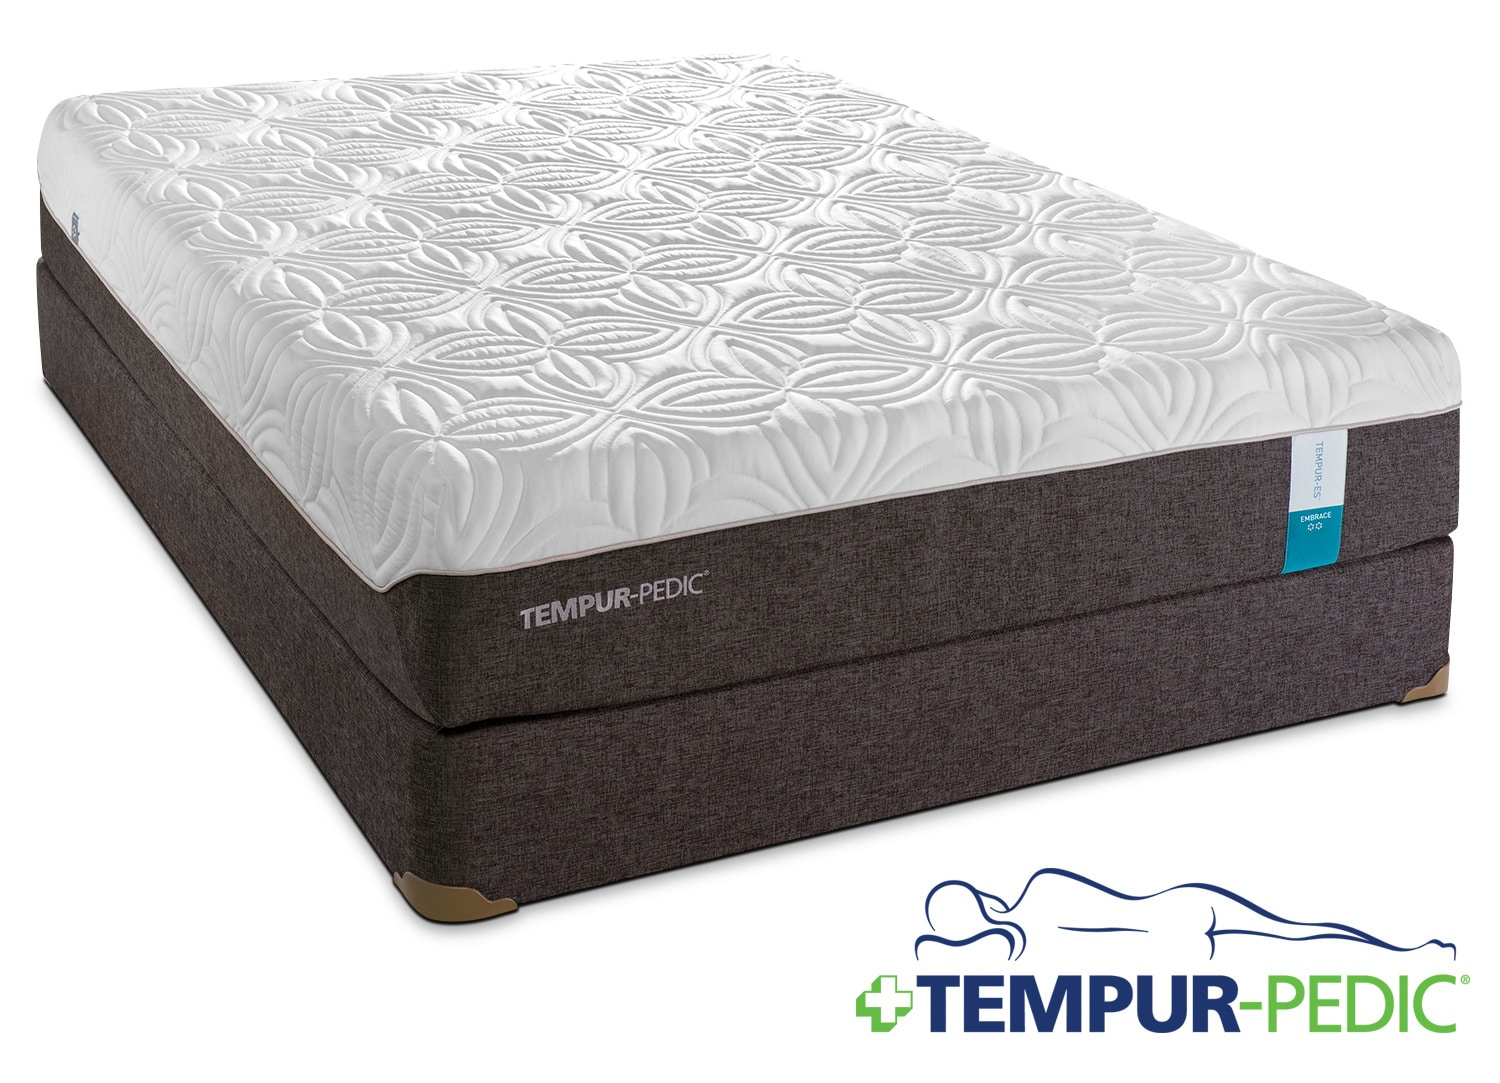 Tempur-Pedic Embrace 2.0 Plush Queen Mattress and Boxspring Set